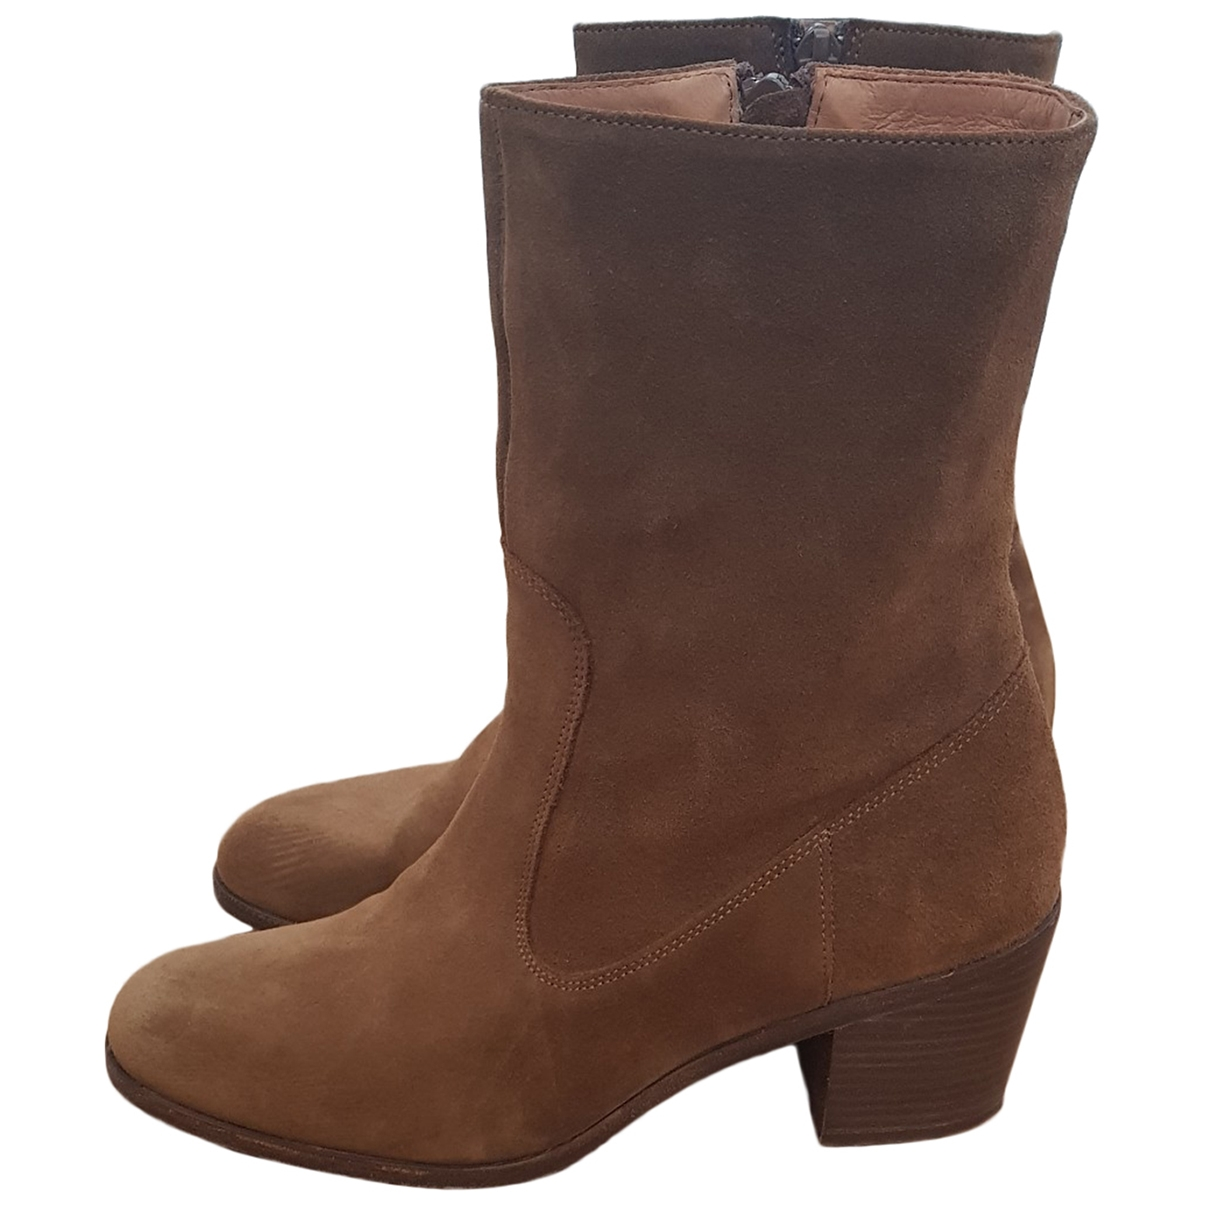 Sessun \N Beige Suede Ankle boots for Women 40 EU